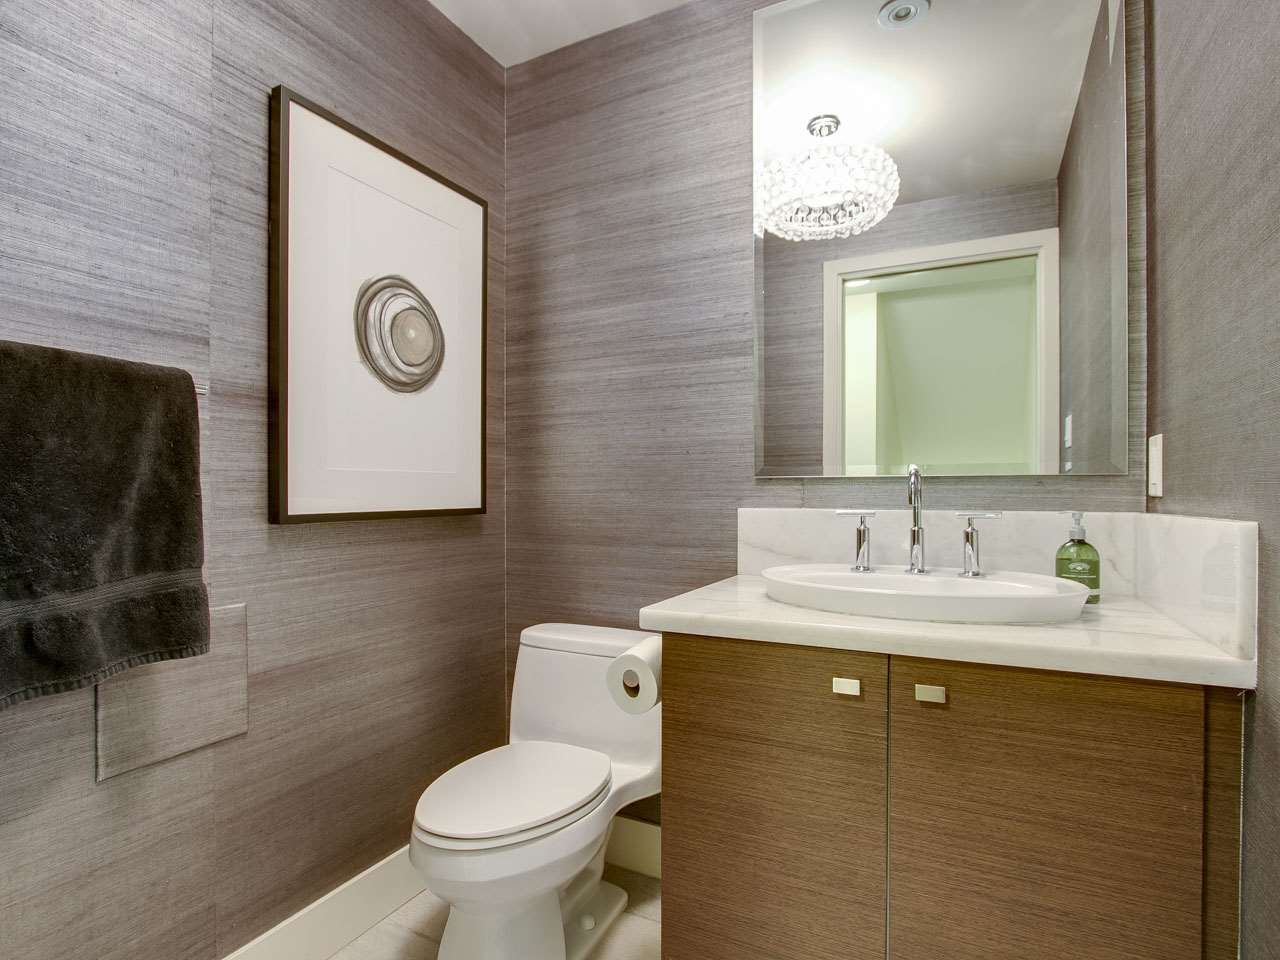 Photo 12: 113 6018 IONA DRIVE in Vancouver: University VW Townhouse for sale (Vancouver West)  : MLS® # R2146501